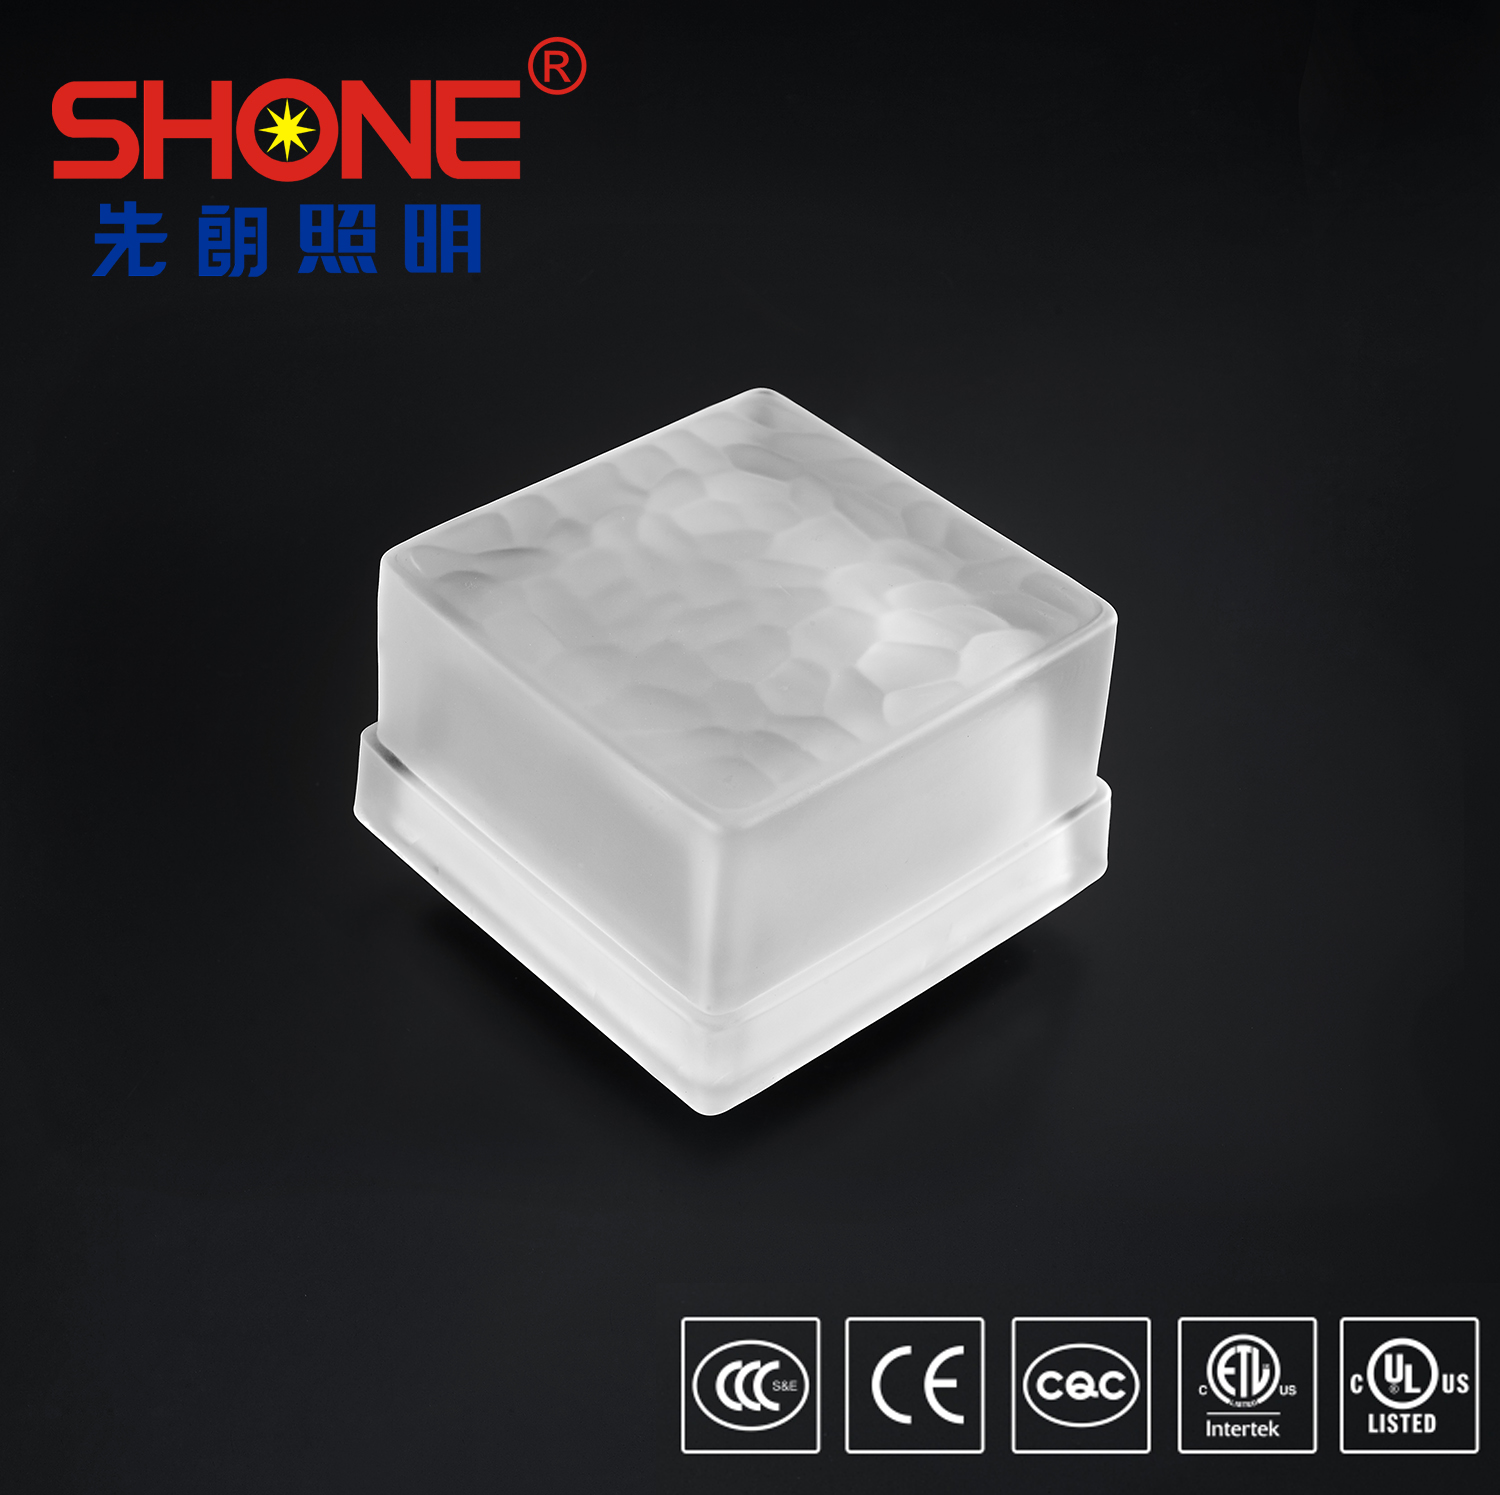 Shone Lighting Original Design Crystal LED Brick Glass Tile Light IP67 for Outdoor Lighting